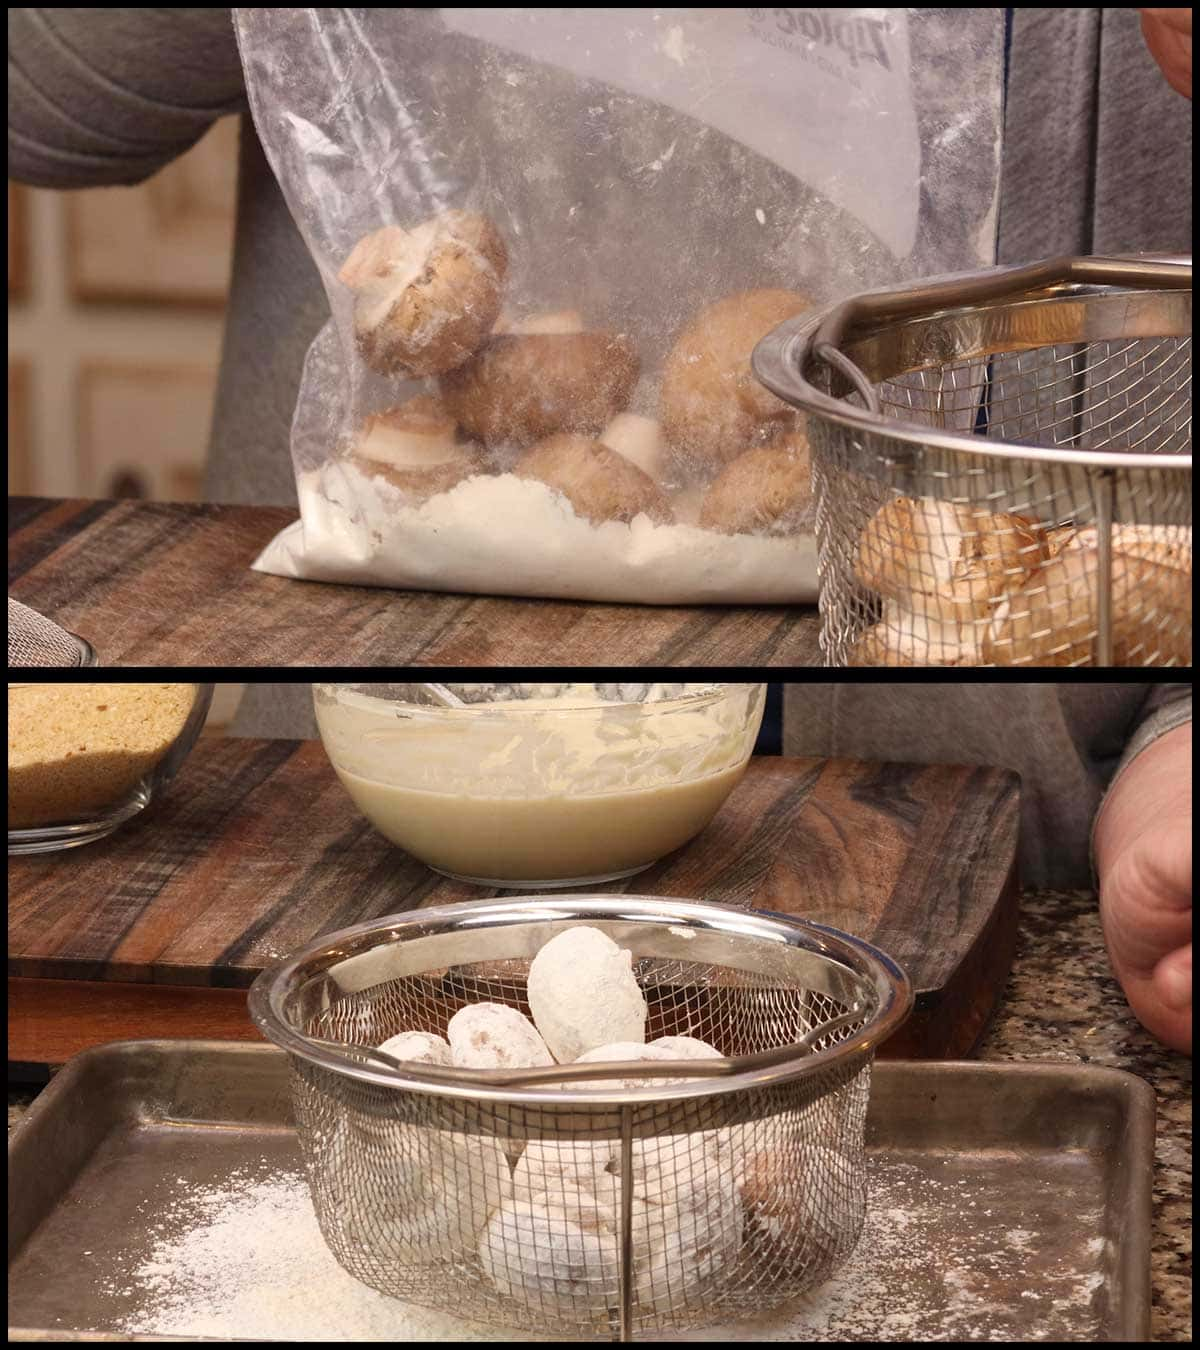 coating the mushrooms with flour